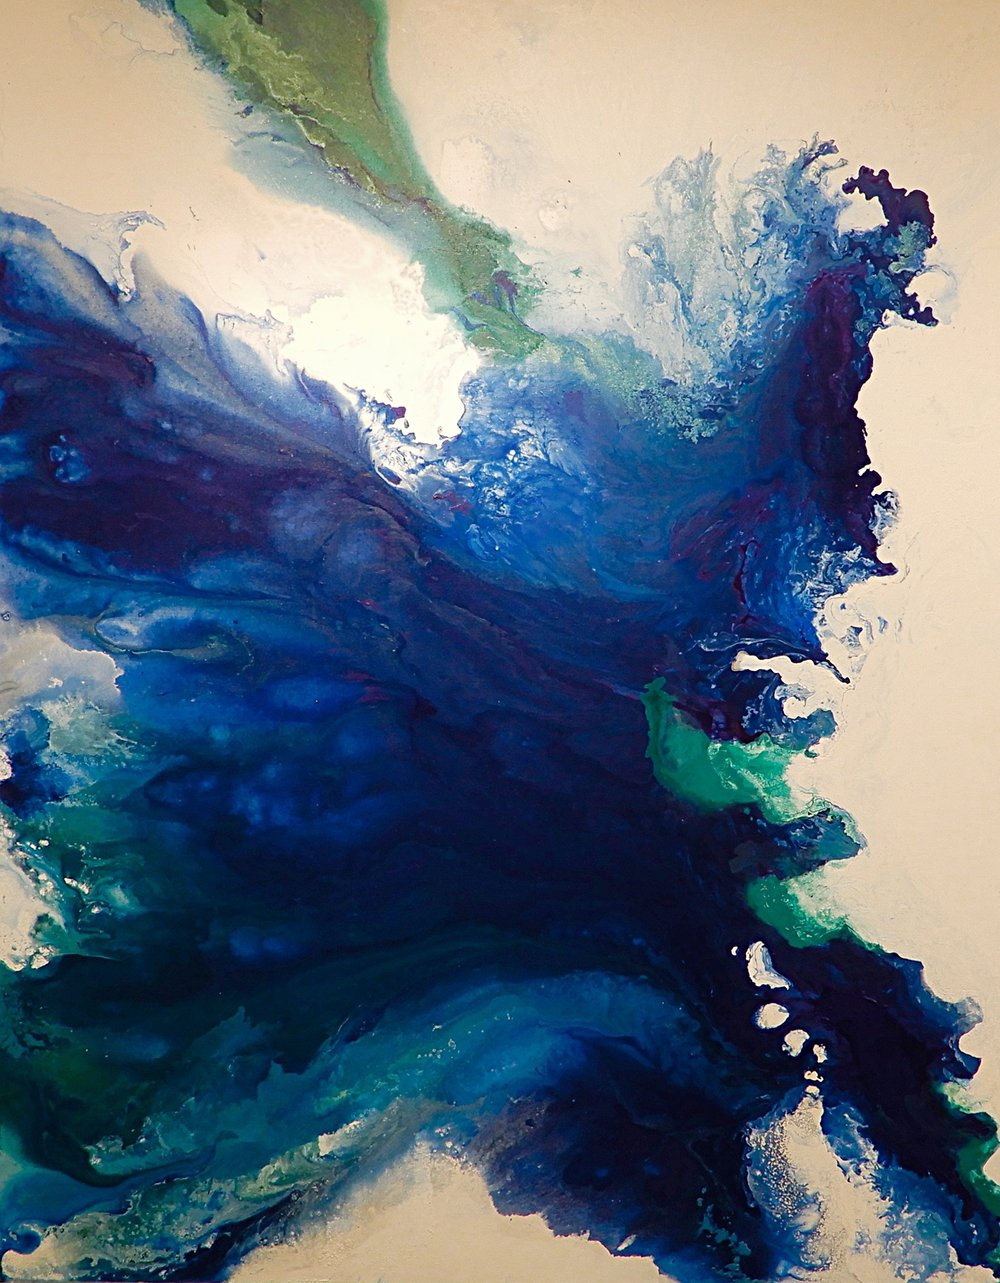 Suzan Zbranek - Abstract Acrylic and Texture Paintings